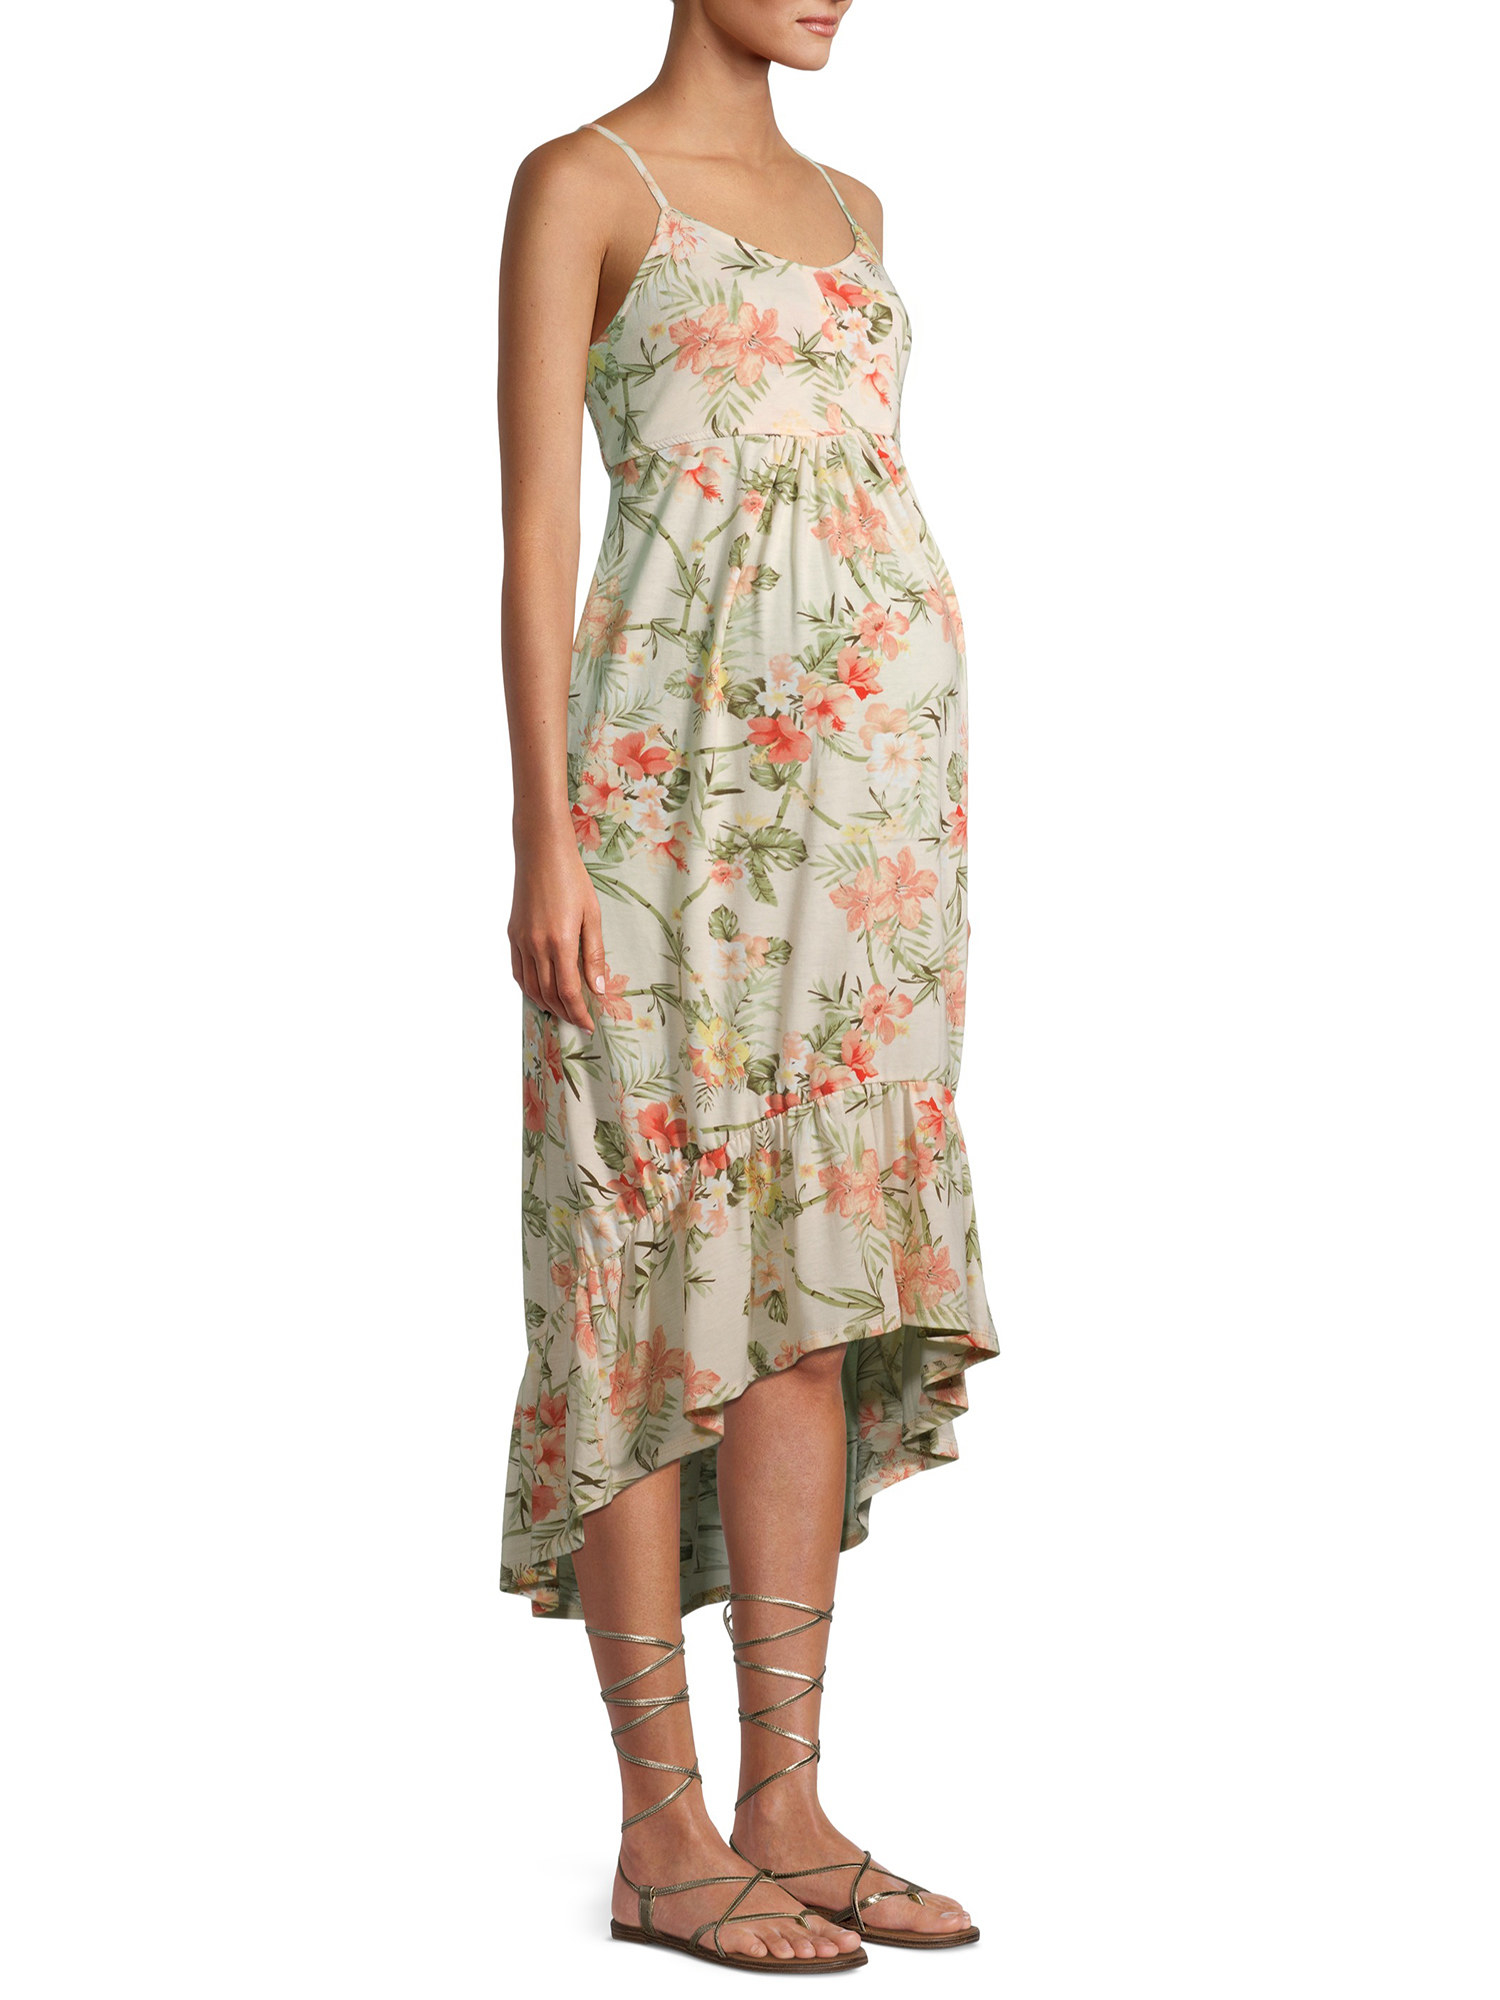 a model in a high low dress with a pink and green floral print